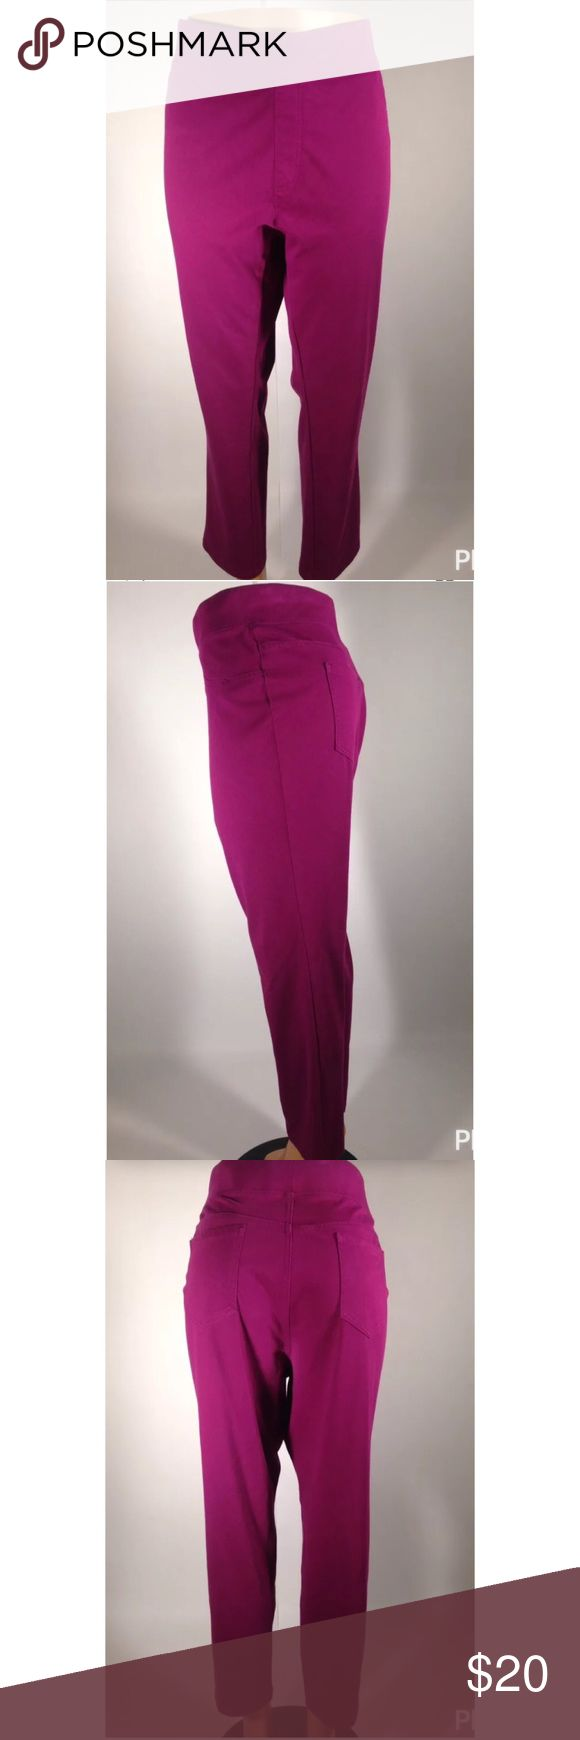 "Faded Glory Women Jegging Capri Size 3X Pink Faded Glory Women Jegging Capri Size 3X (22W-24W) Magenta Casual  51% Polyester 42% Cotton 7% Spandex  Waist 21.5""  Rise 12.5""  Hips 24""  Inseam 28""  Check out my store for other great finds  I-23 Faded Glory Pants Capris"